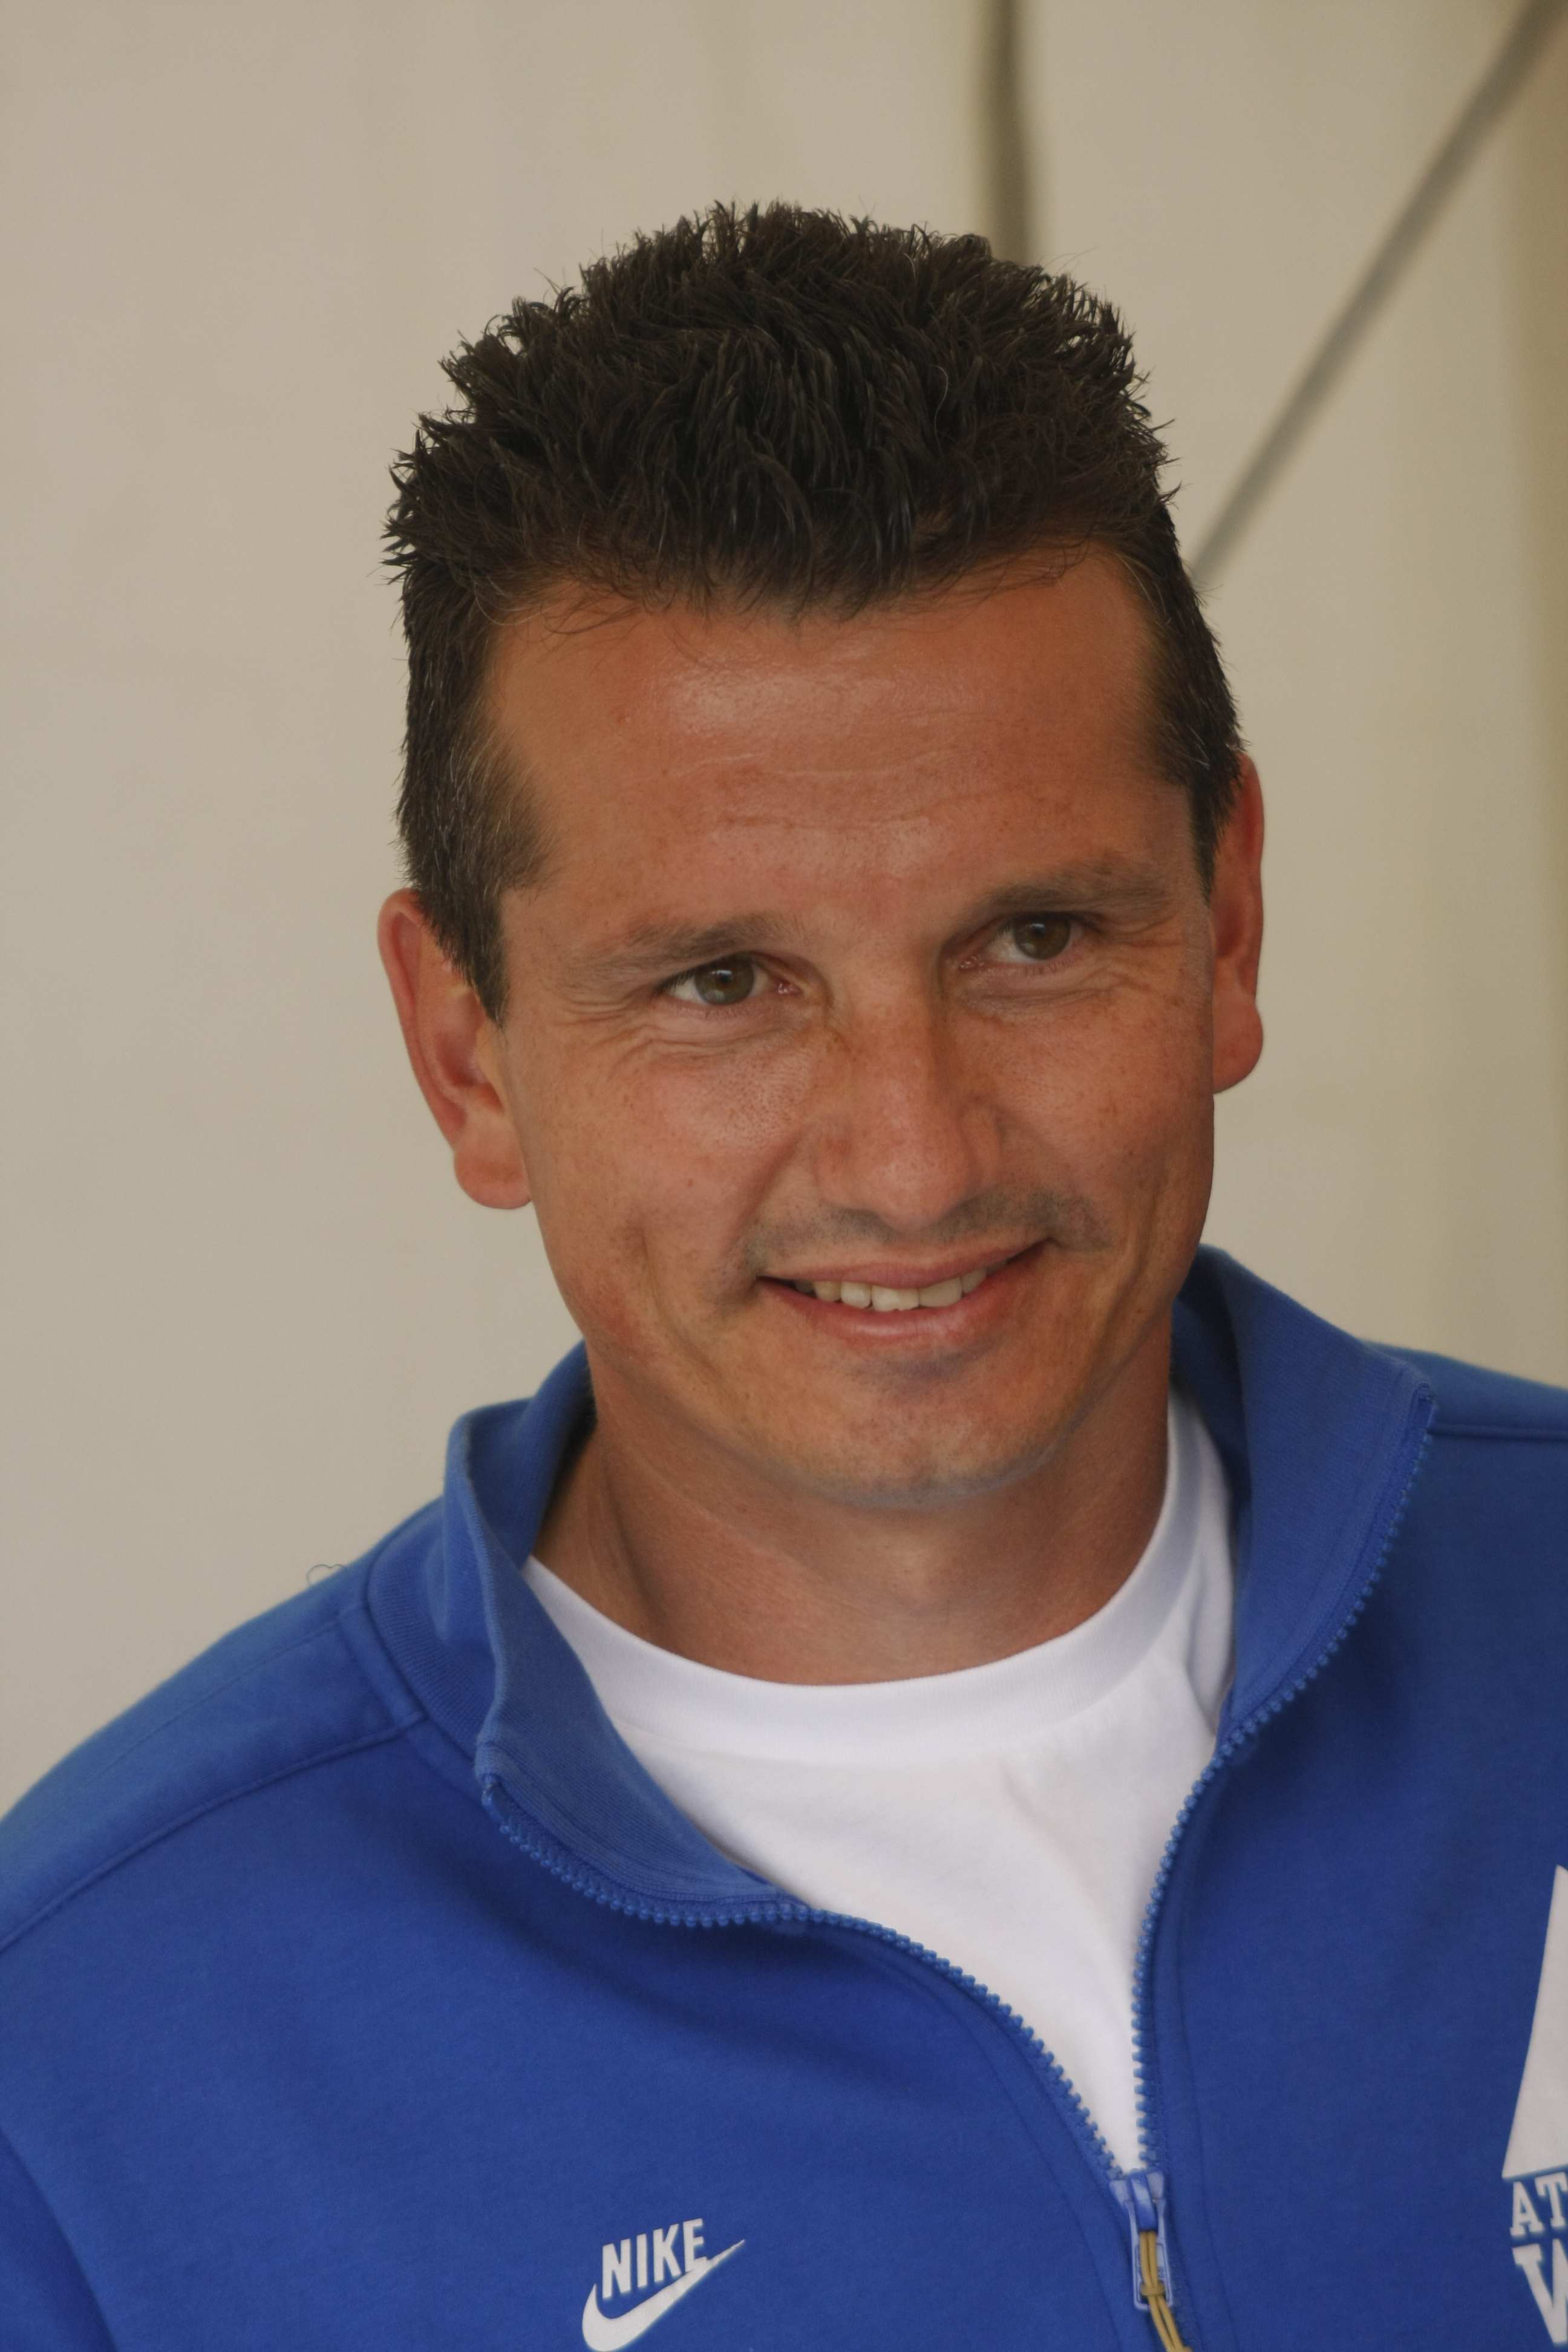 The 46-year old son of father (?) and mother(?) Richard Krajicek in 2018 photo. Richard Krajicek earned a  million dollar salary - leaving the net worth at 15 million in 2018